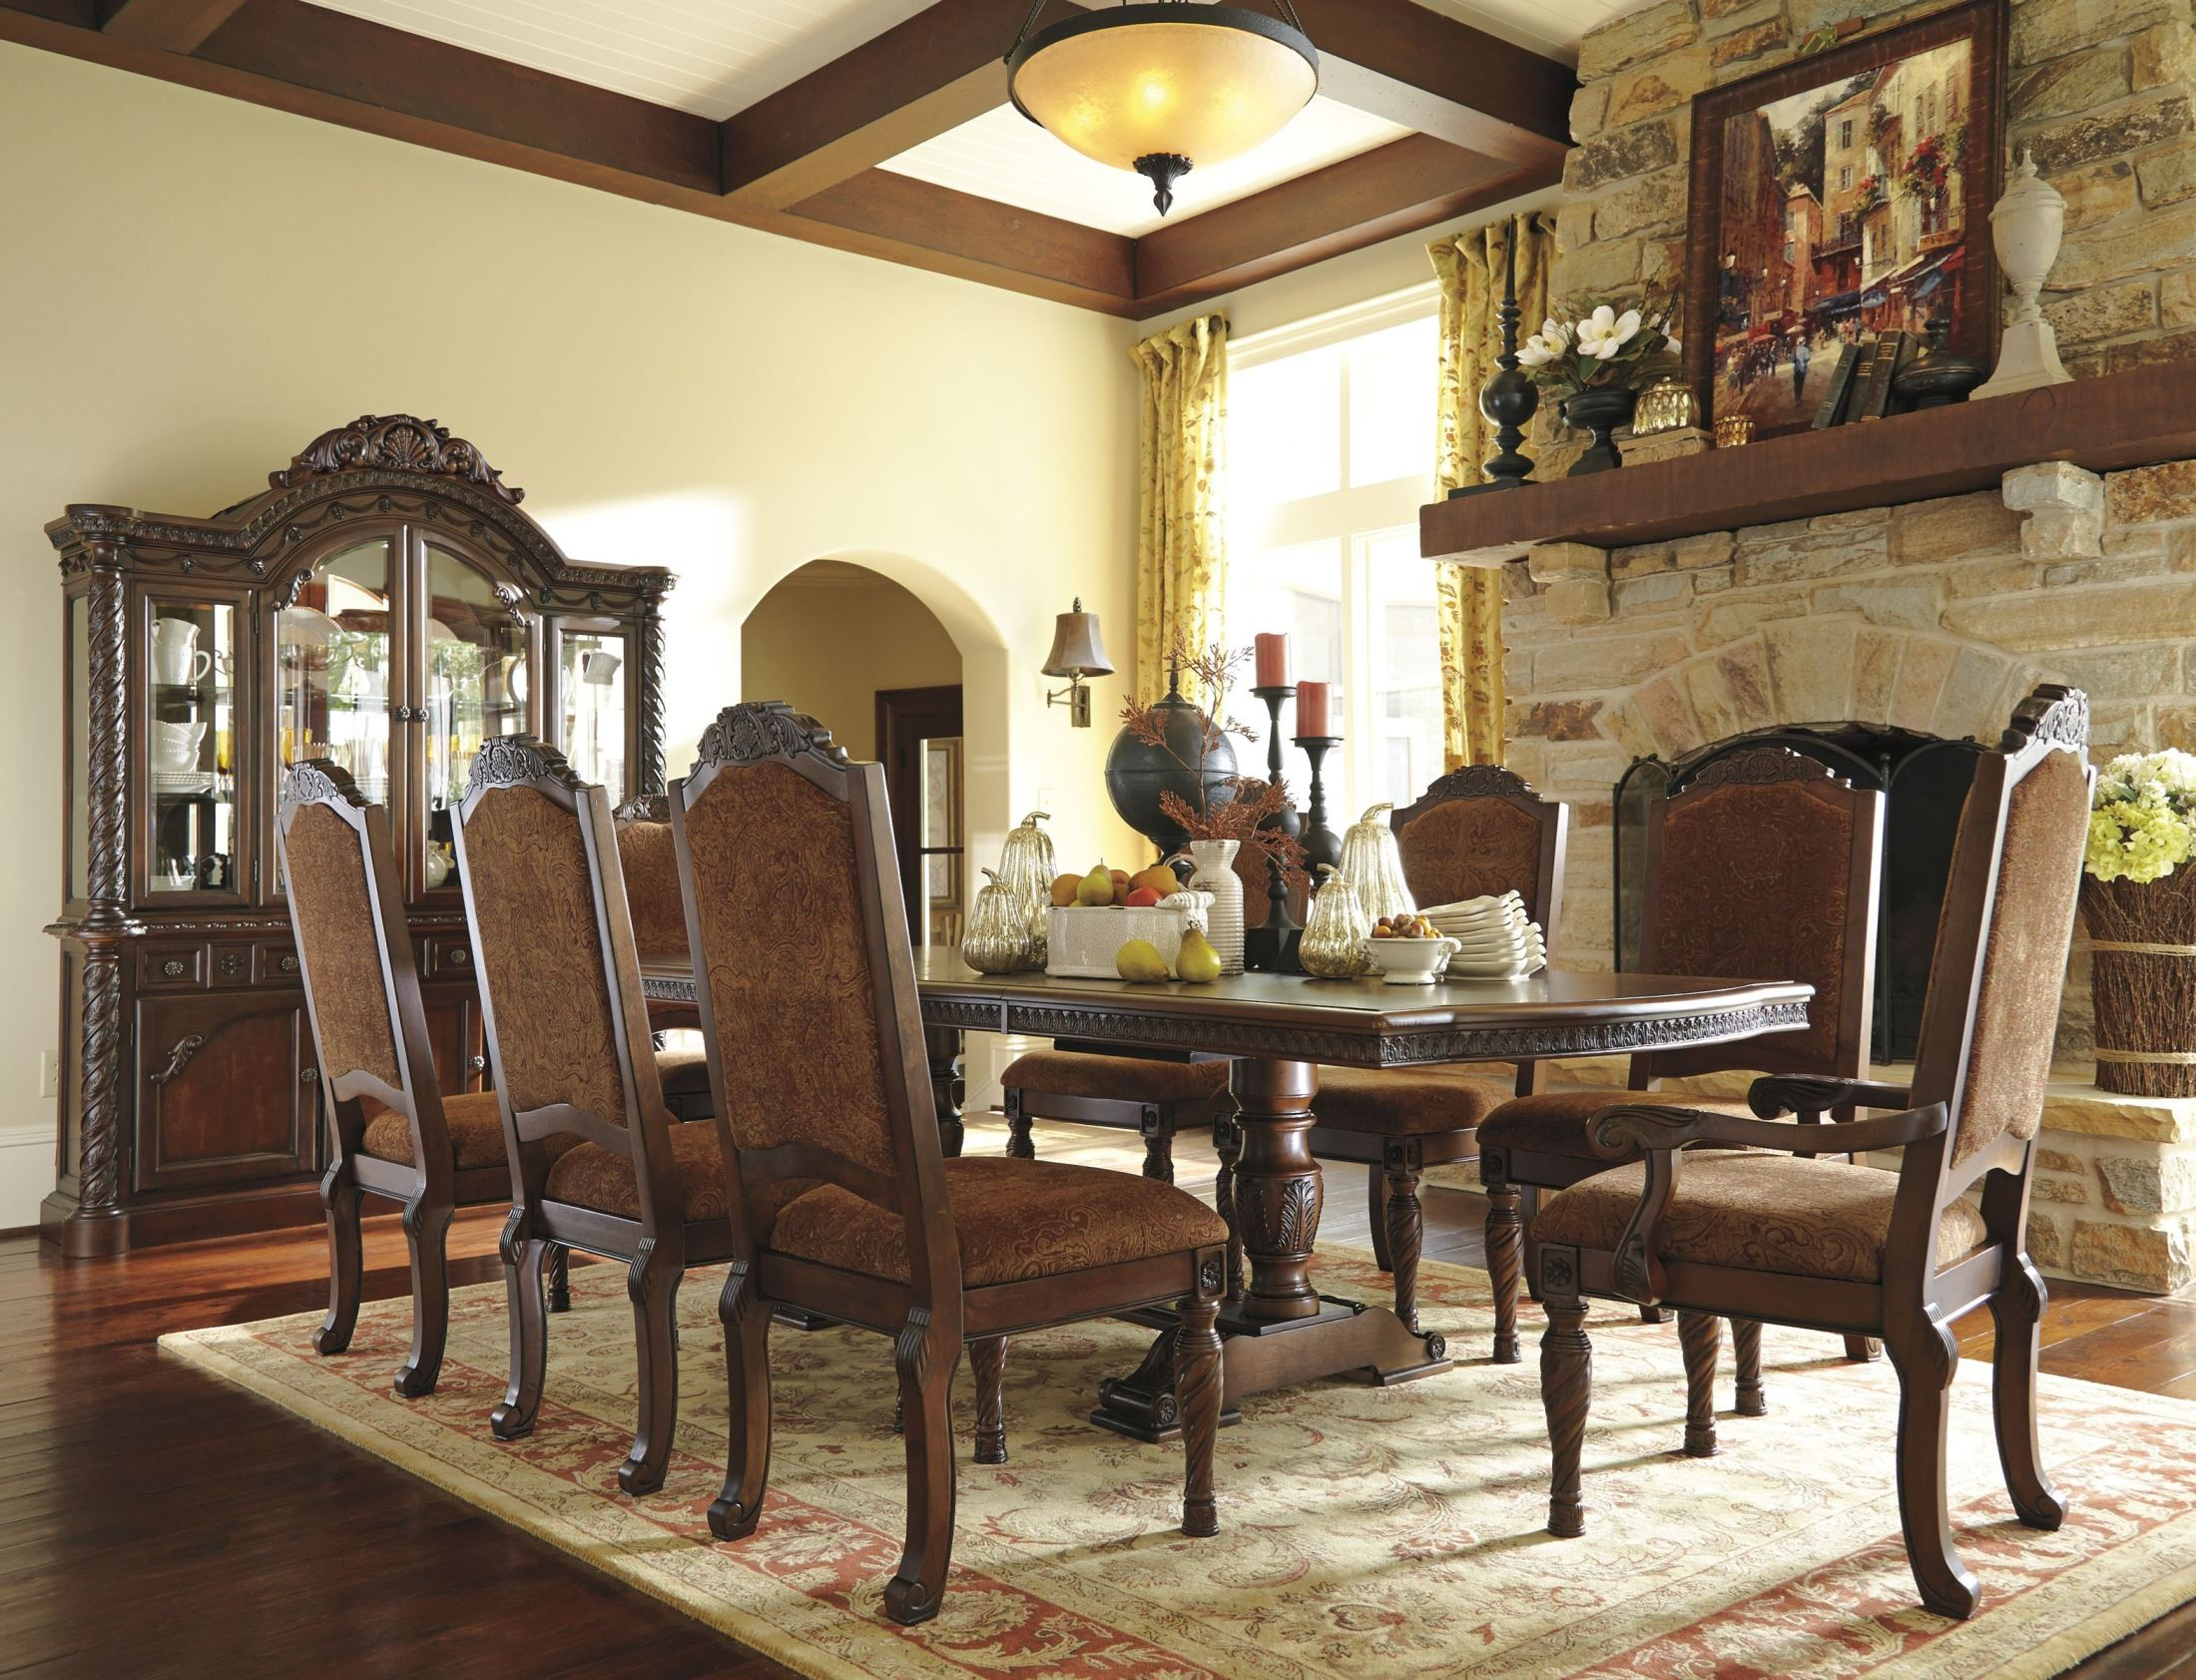 Attrayant North Shore Double Pedestal Dining Room Set From Millennium By Ashley ·  2298846 · 2298696 · 2298695 · 1697918